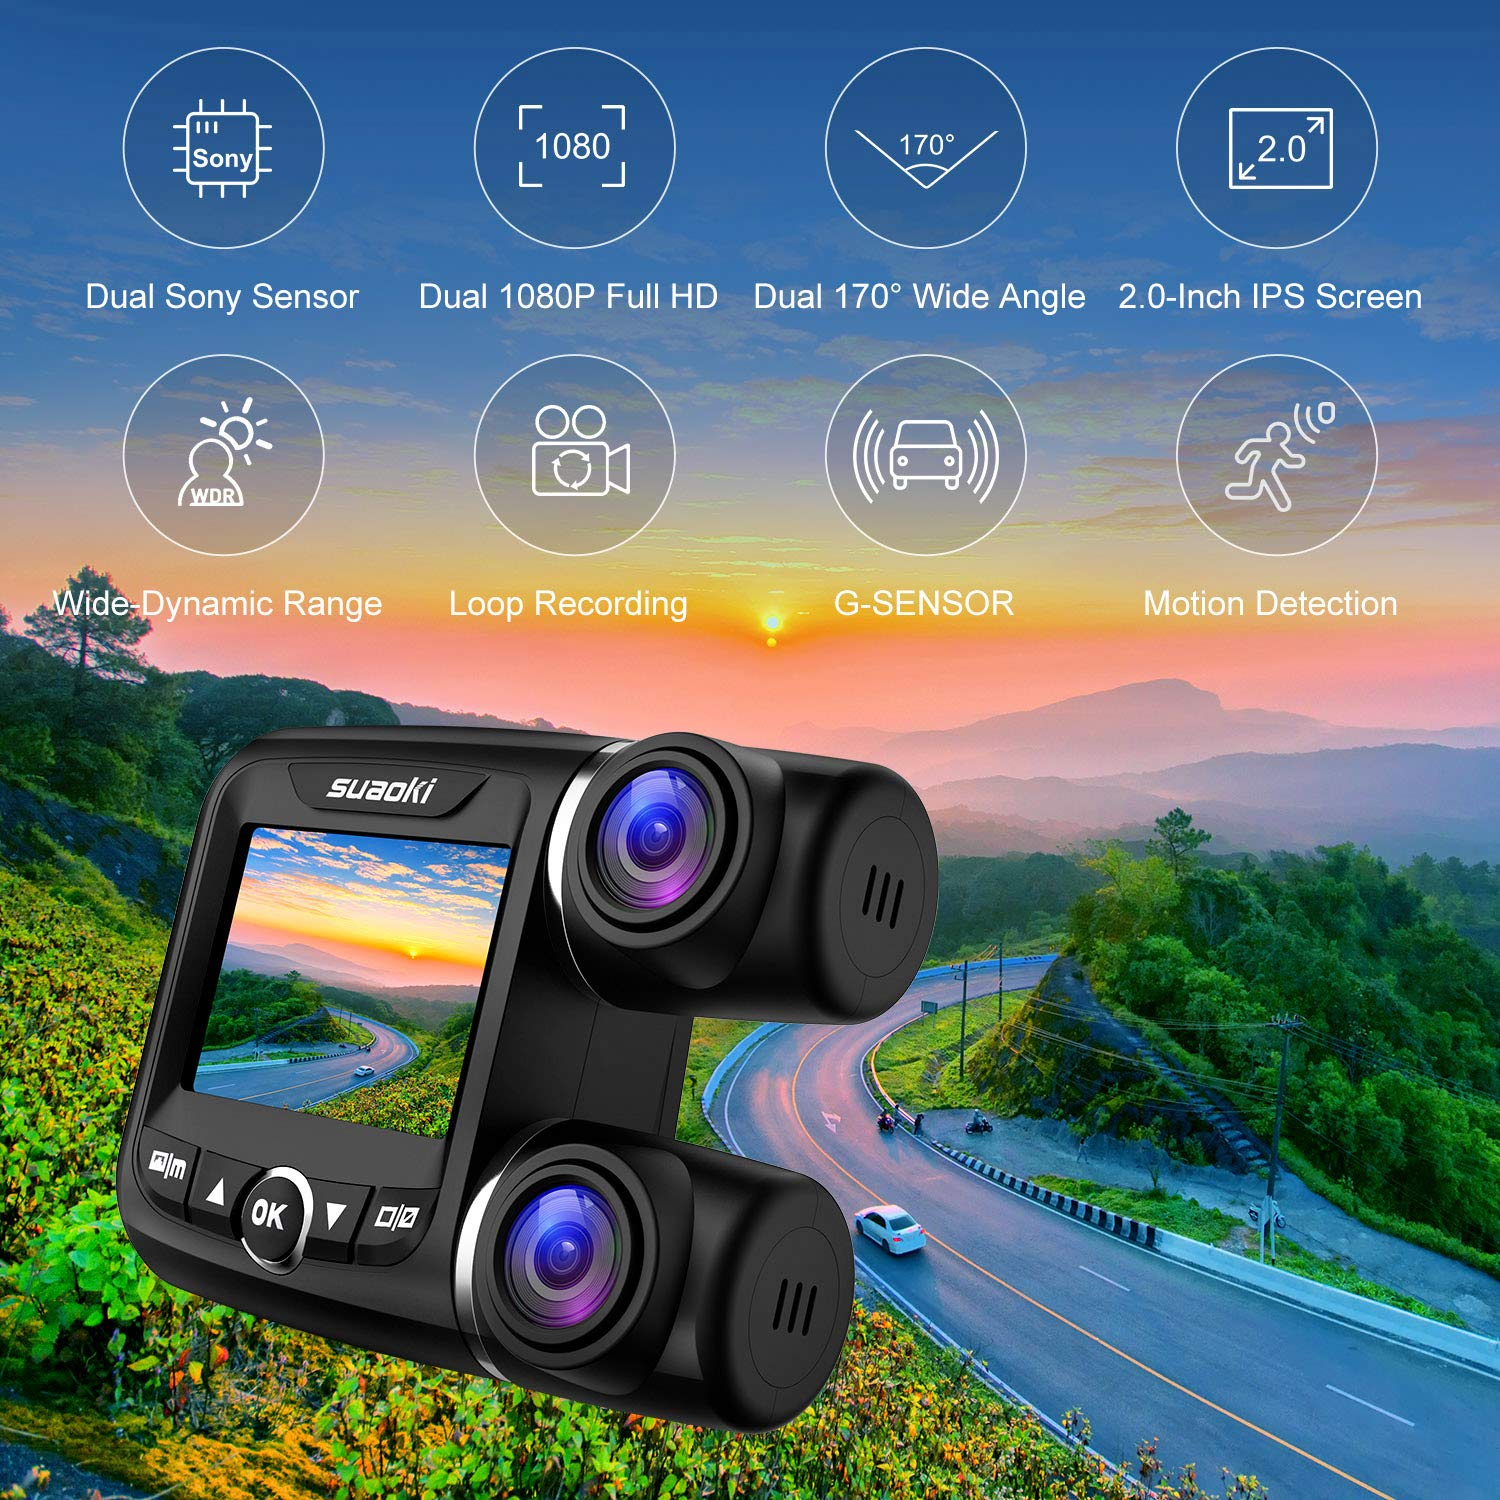 G-sensor and Loop Recording for Cars Truck Taxi SUV 340/° Wide Angle GPS Speed Monitor Supports Up to 32GB Storage Dual Dash Cam Front and Rear Full HD 1080p with Night Vision Sony IMAX323 Sensor